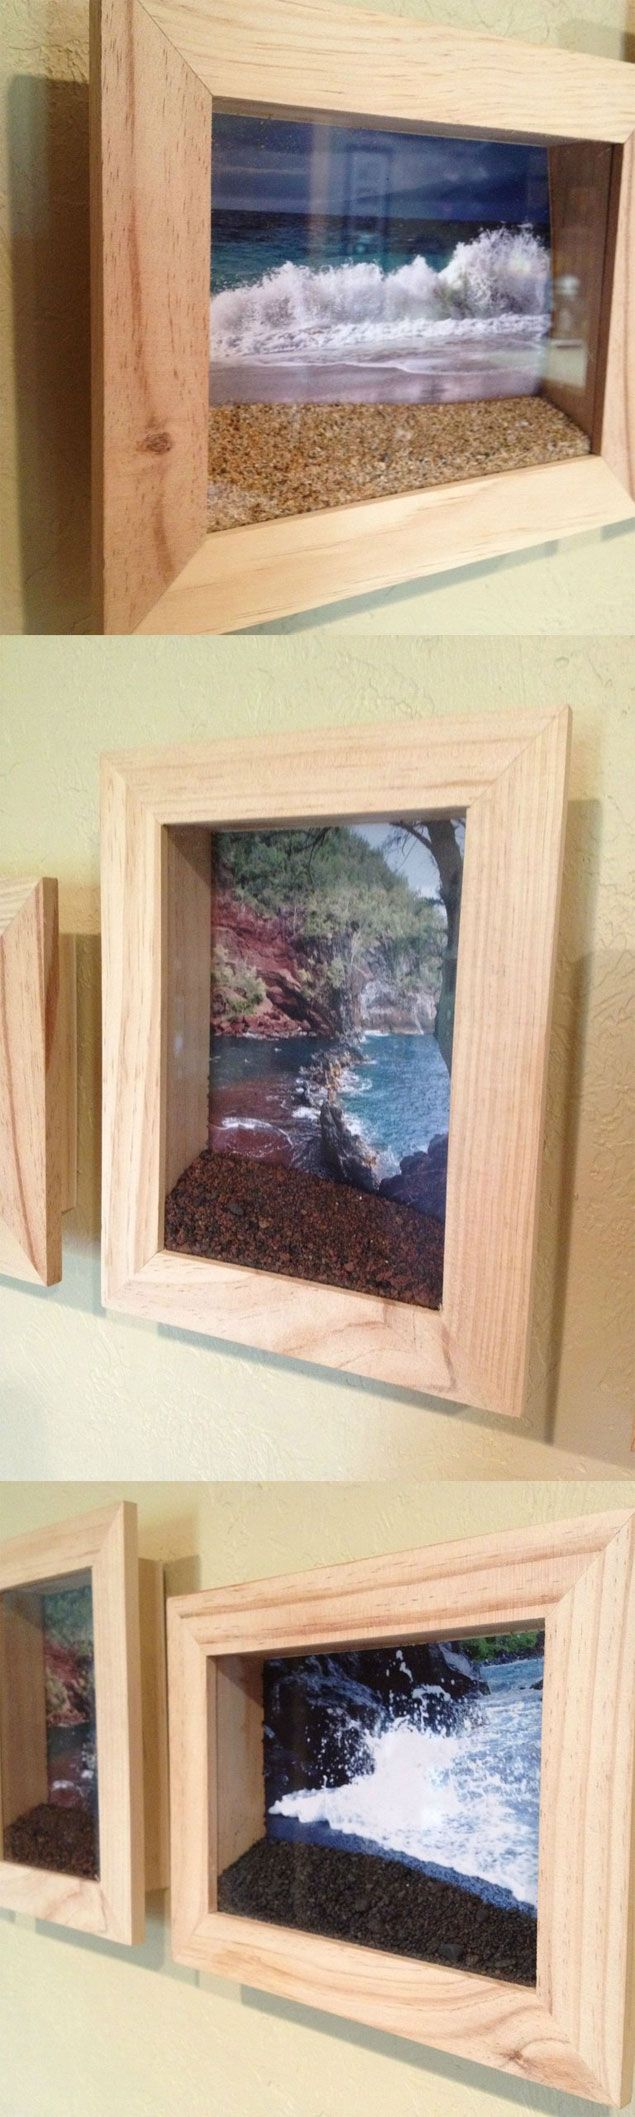 Put a picture of the beach you visited in a shadow box frame and fill the bottom with sand from that beach.Sands, Beach Photos, Good Ideas, Shadowbox, Diy Crafts, Cute Ideas, Pictures, Cool Ideas, Shadows Boxes Frames